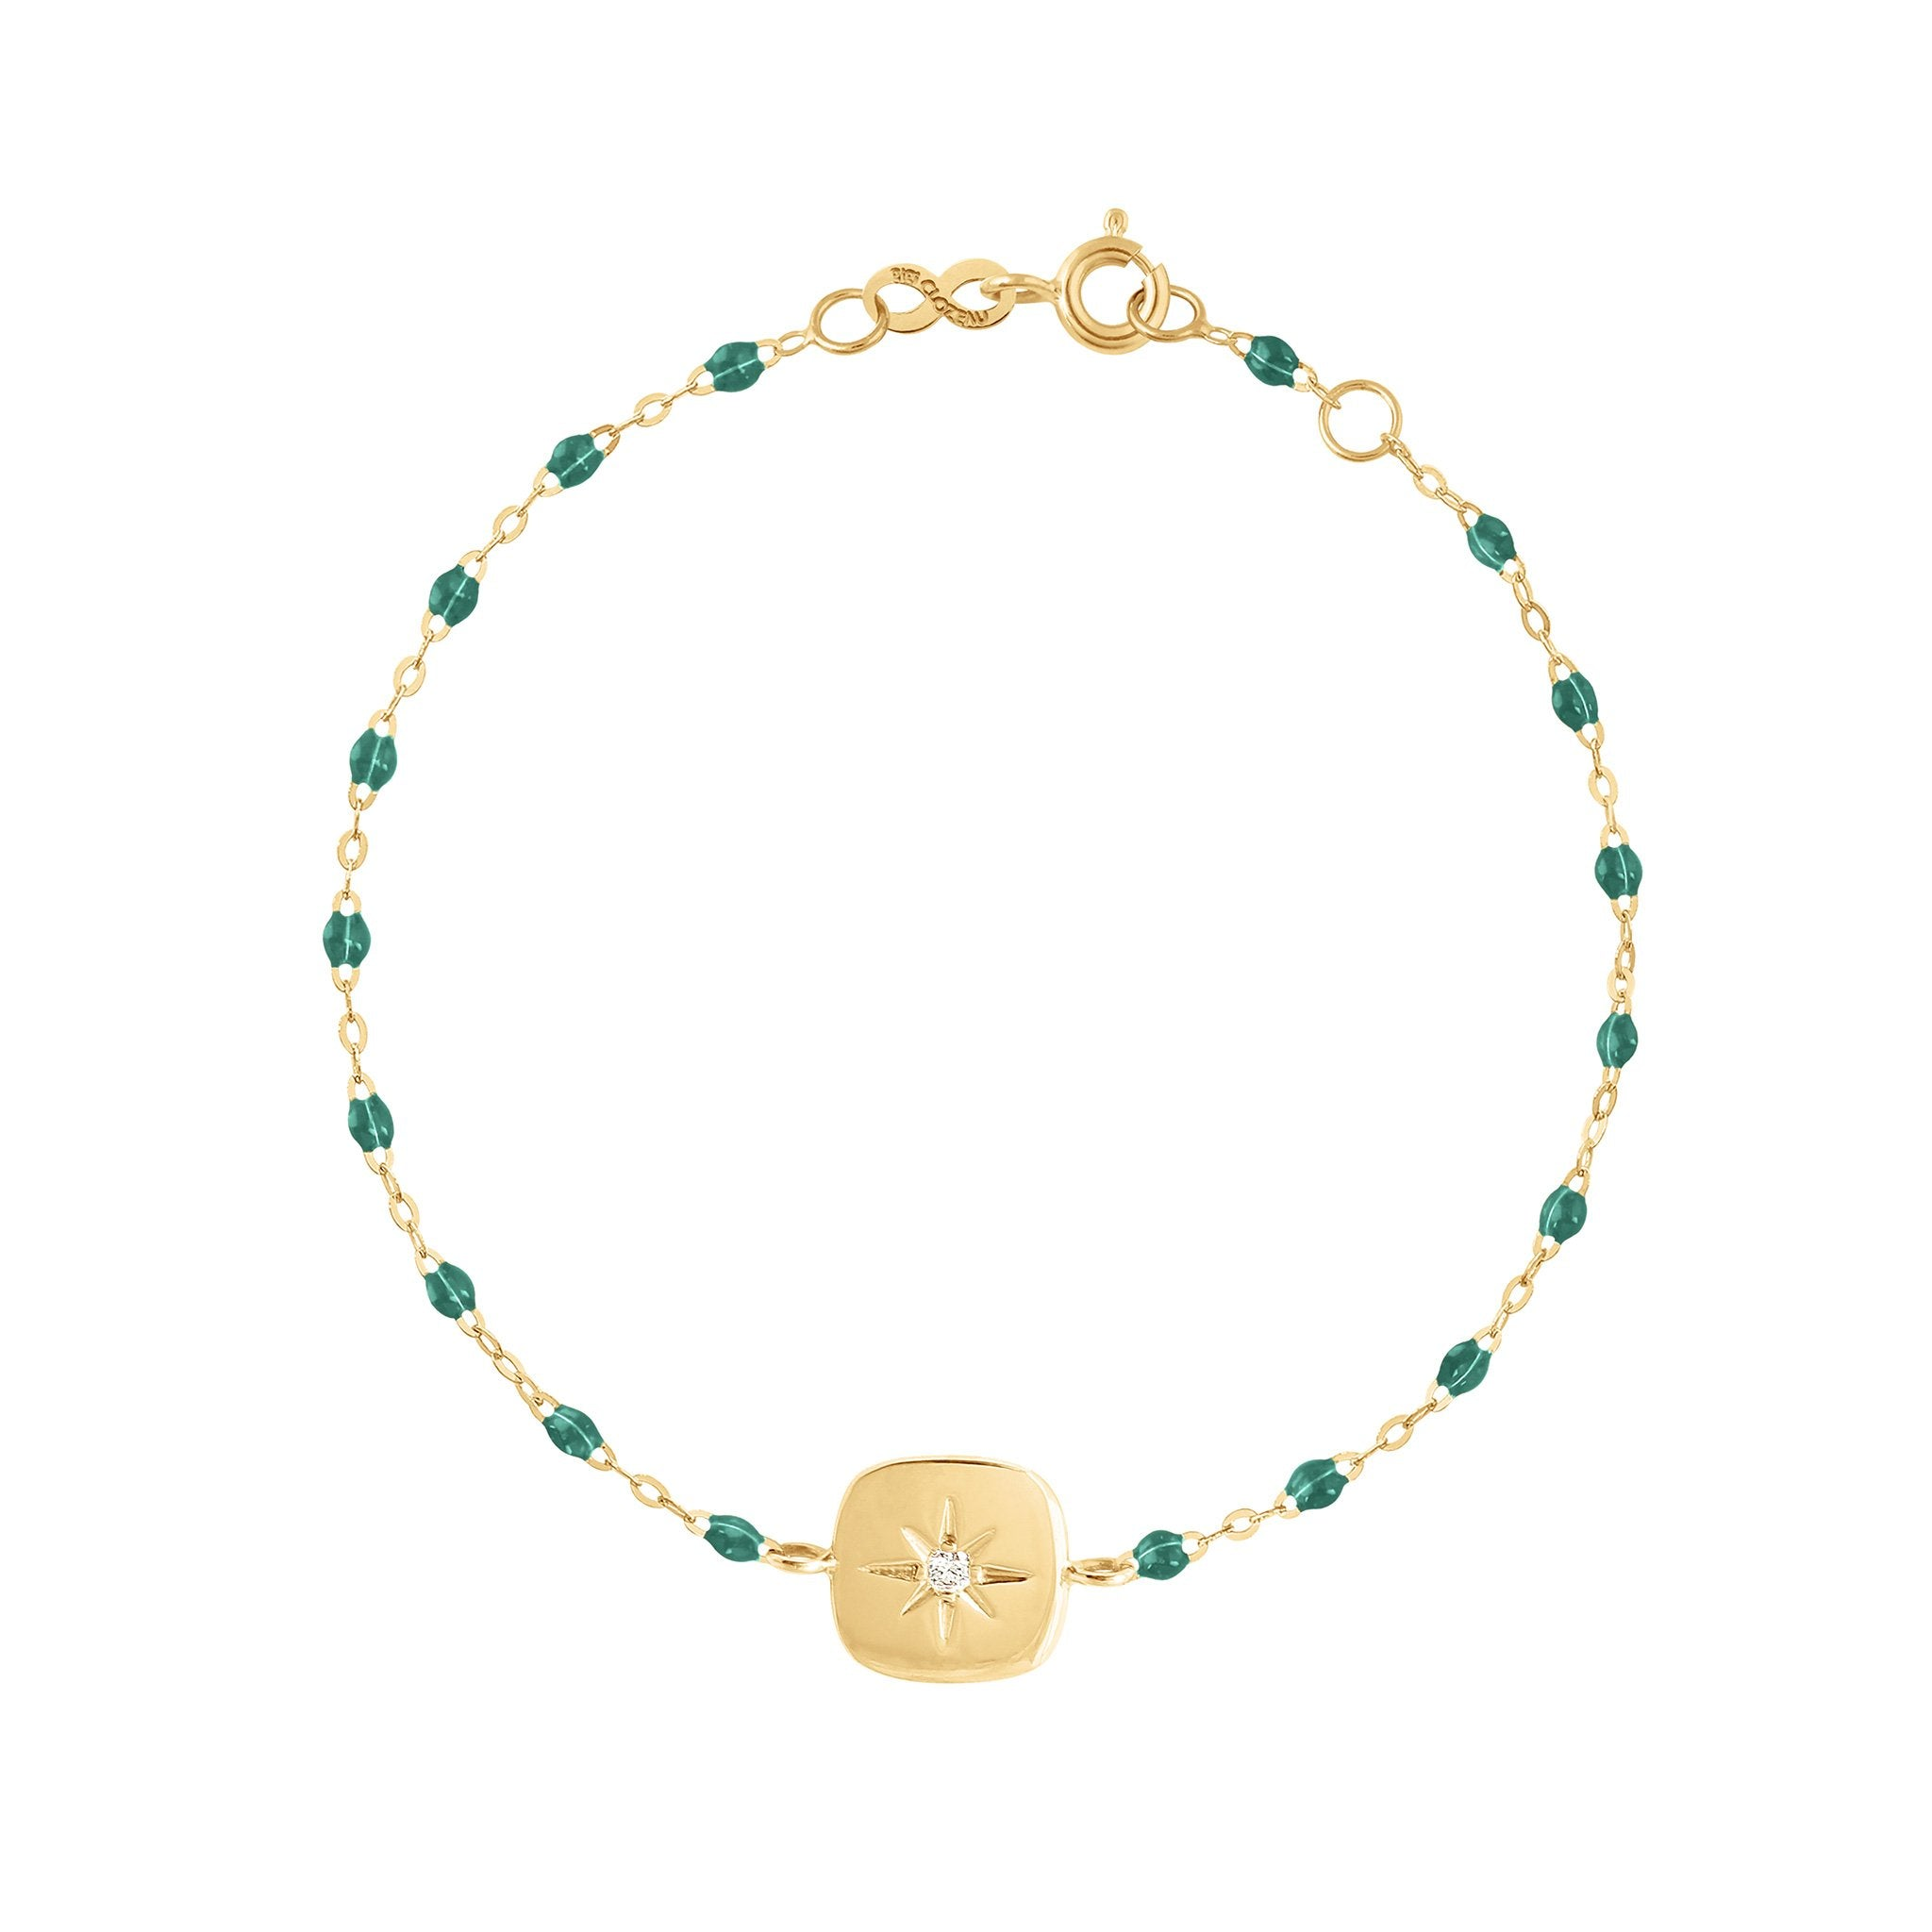 Gigi Clozeau - Miss Gigi Emerald diamond bracelet, Yellow Gold, 6.7""